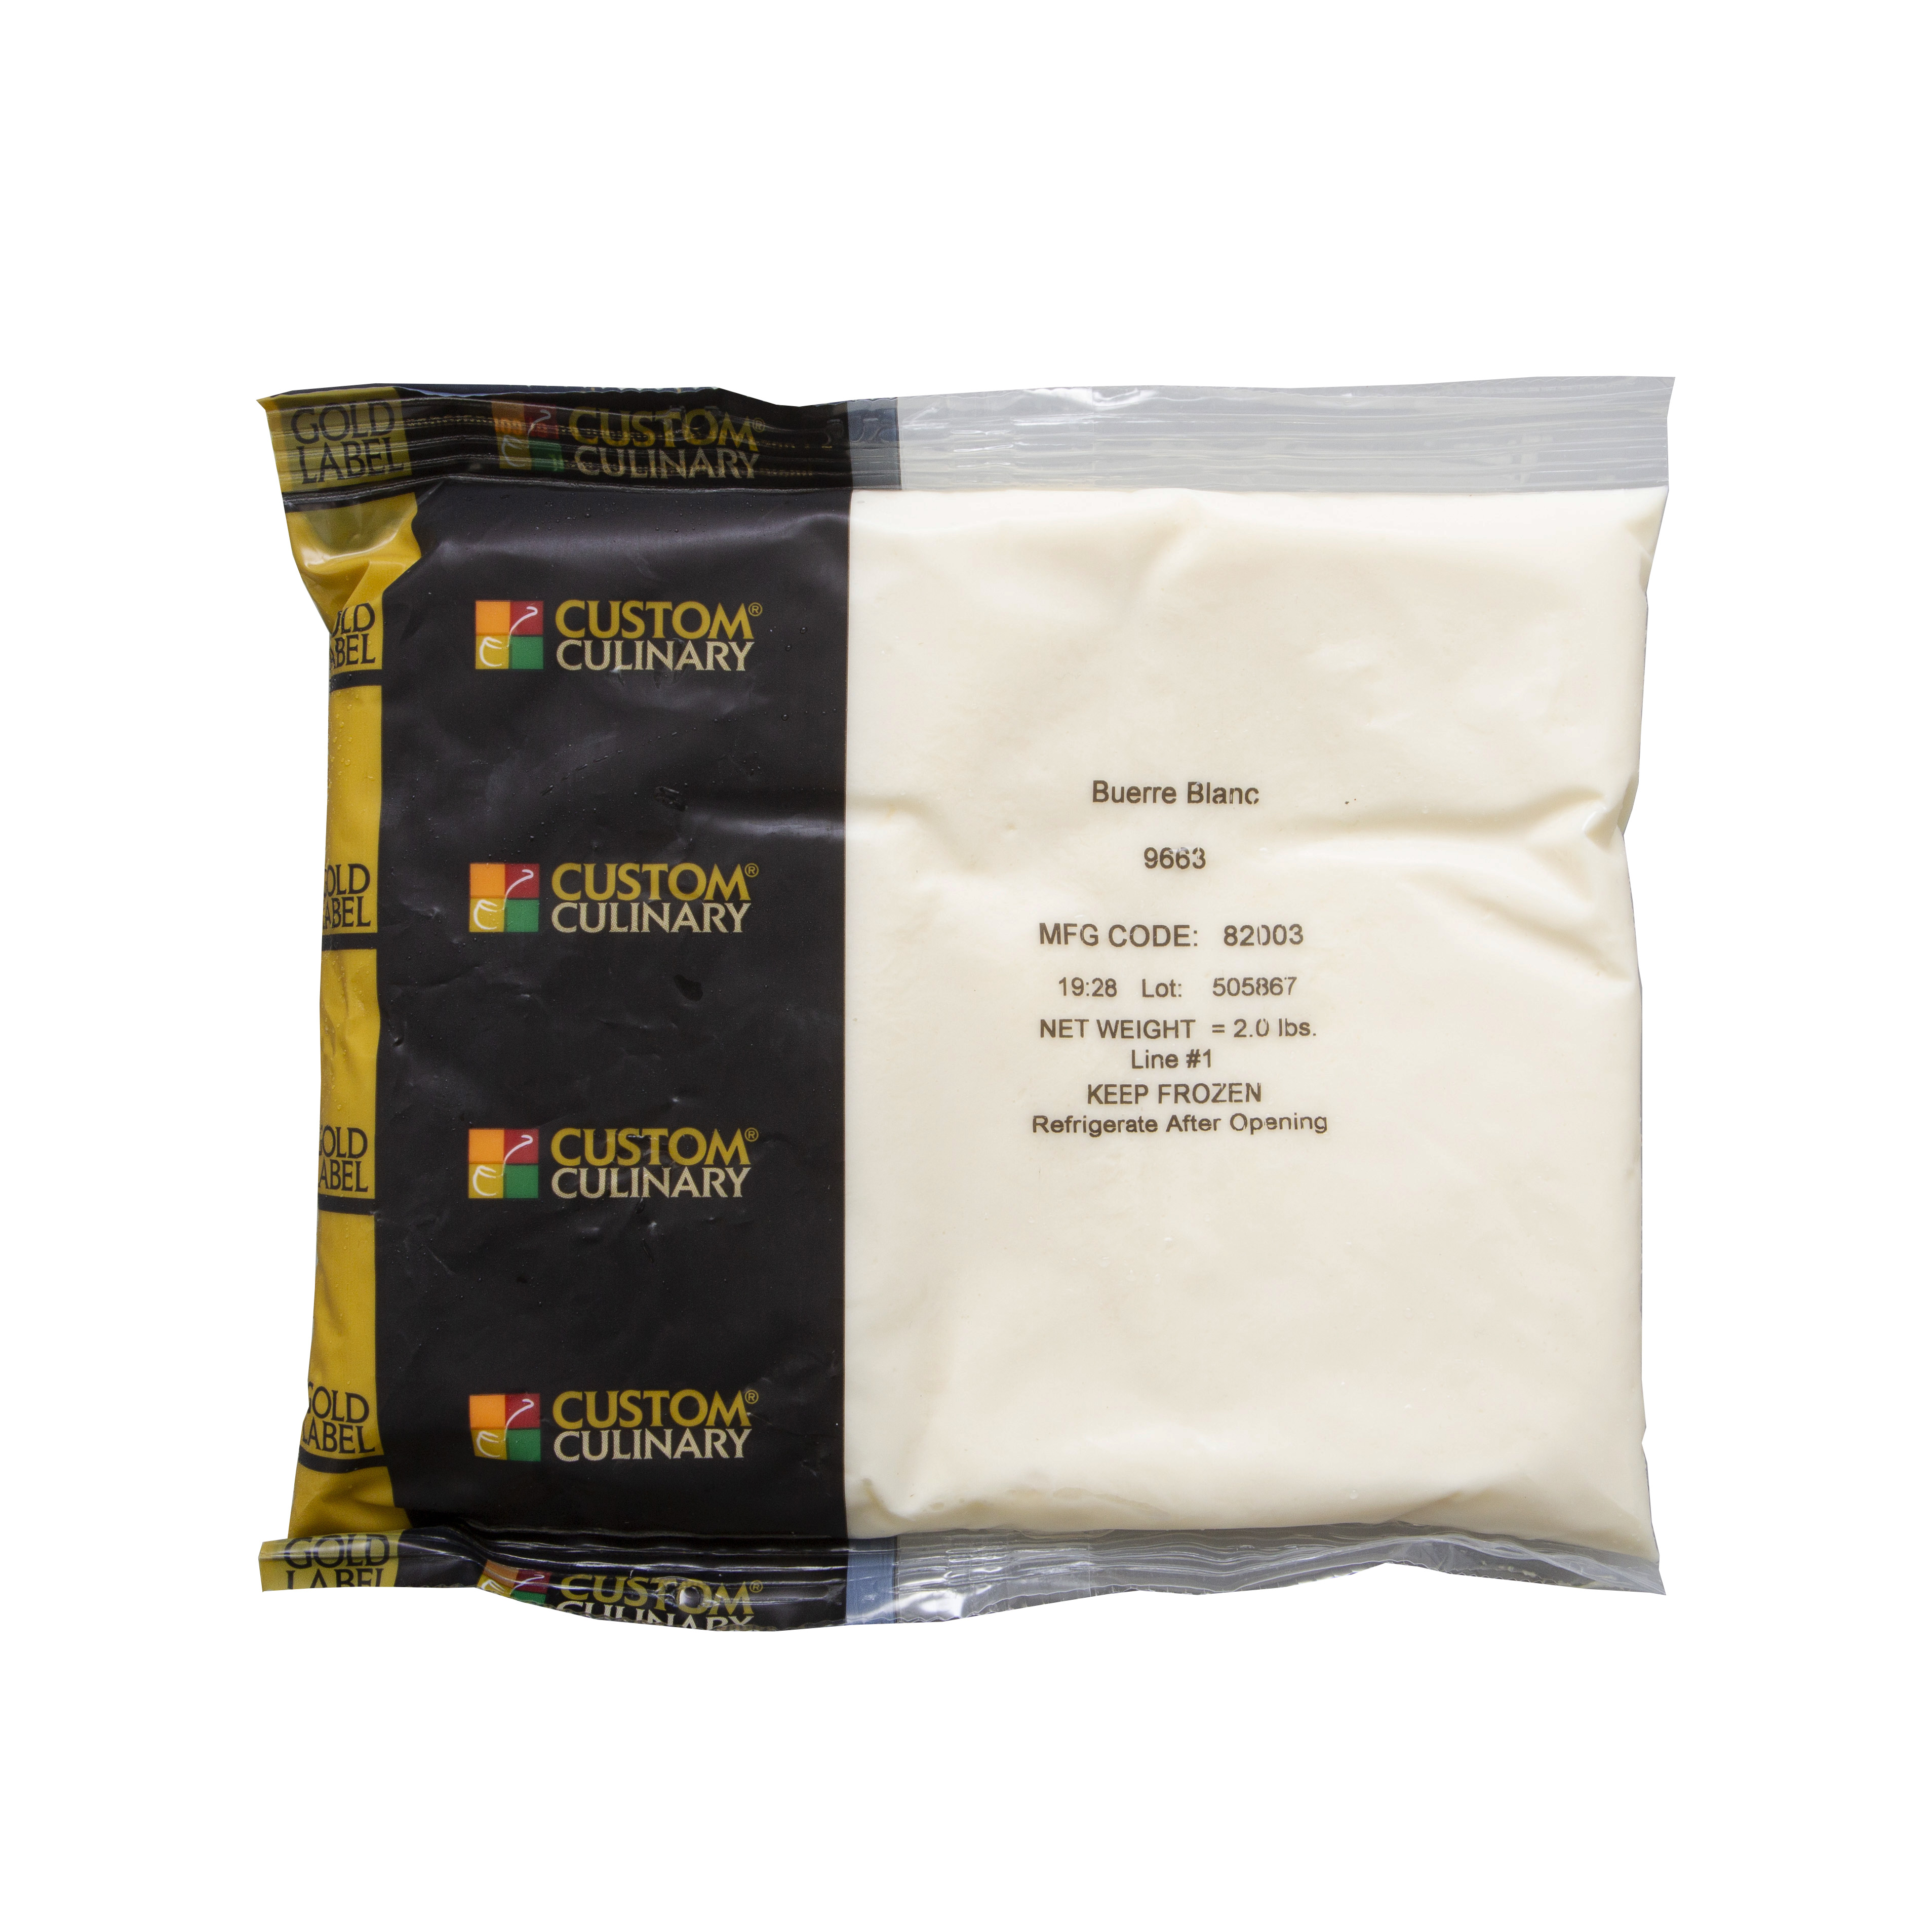 9663 - Gold Label Ready-To-Use Beurre Blanc Sauce with Butter